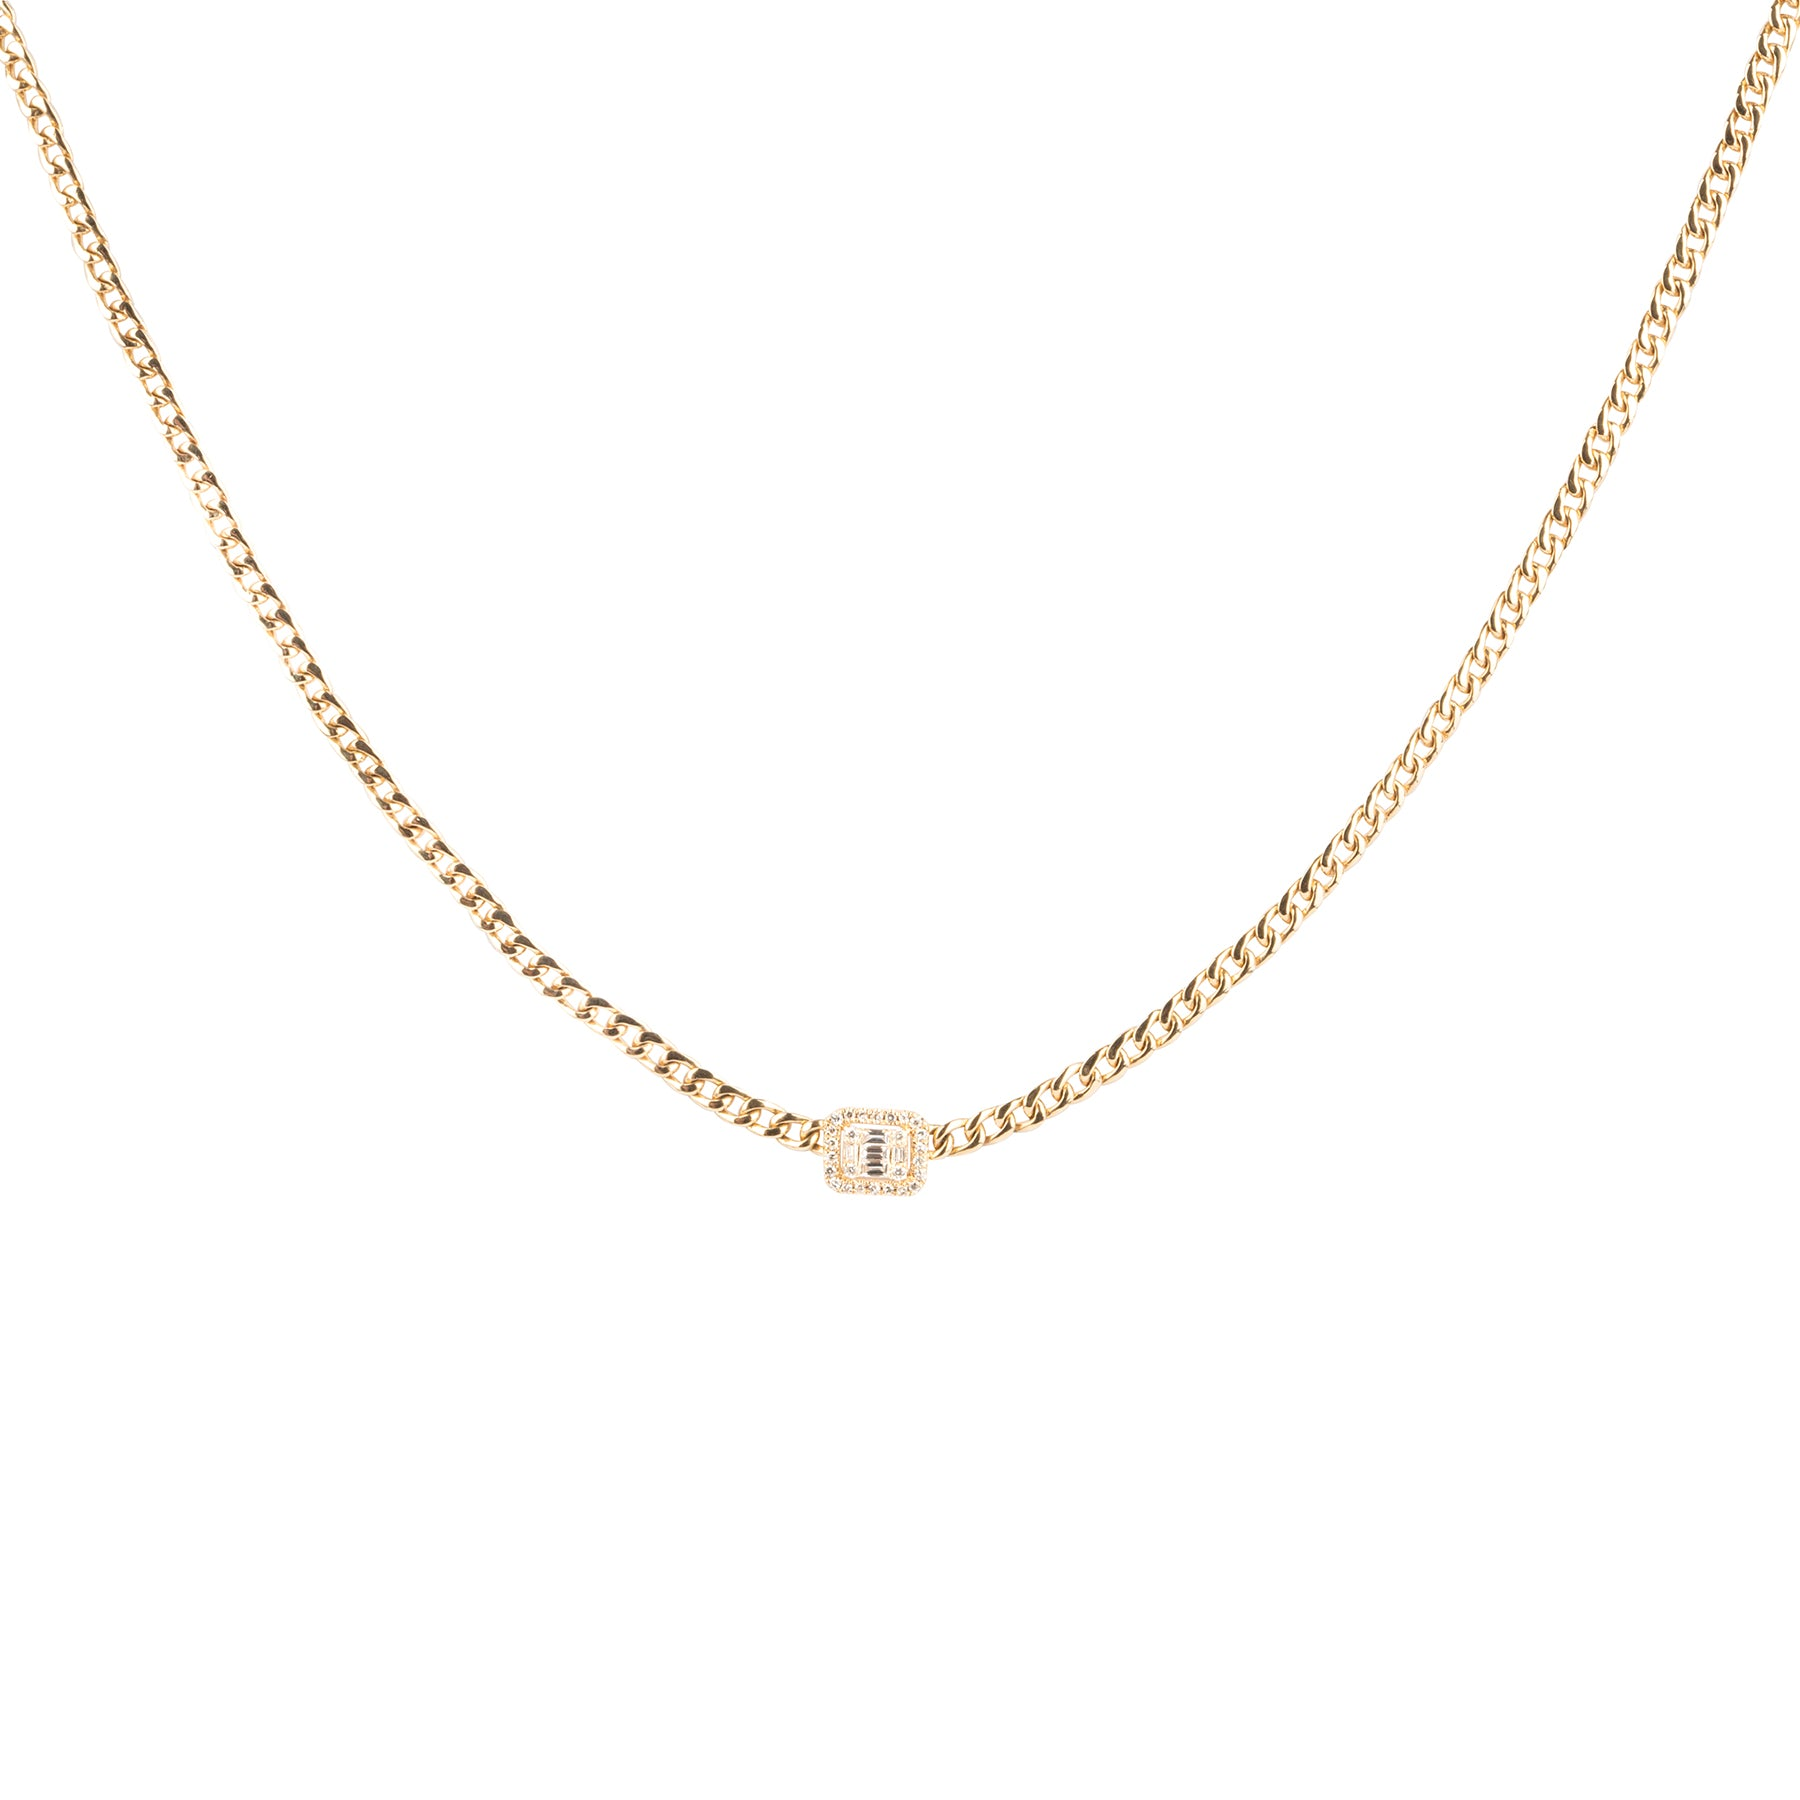 Baguette Diamond Halo Curb Chain Necklace